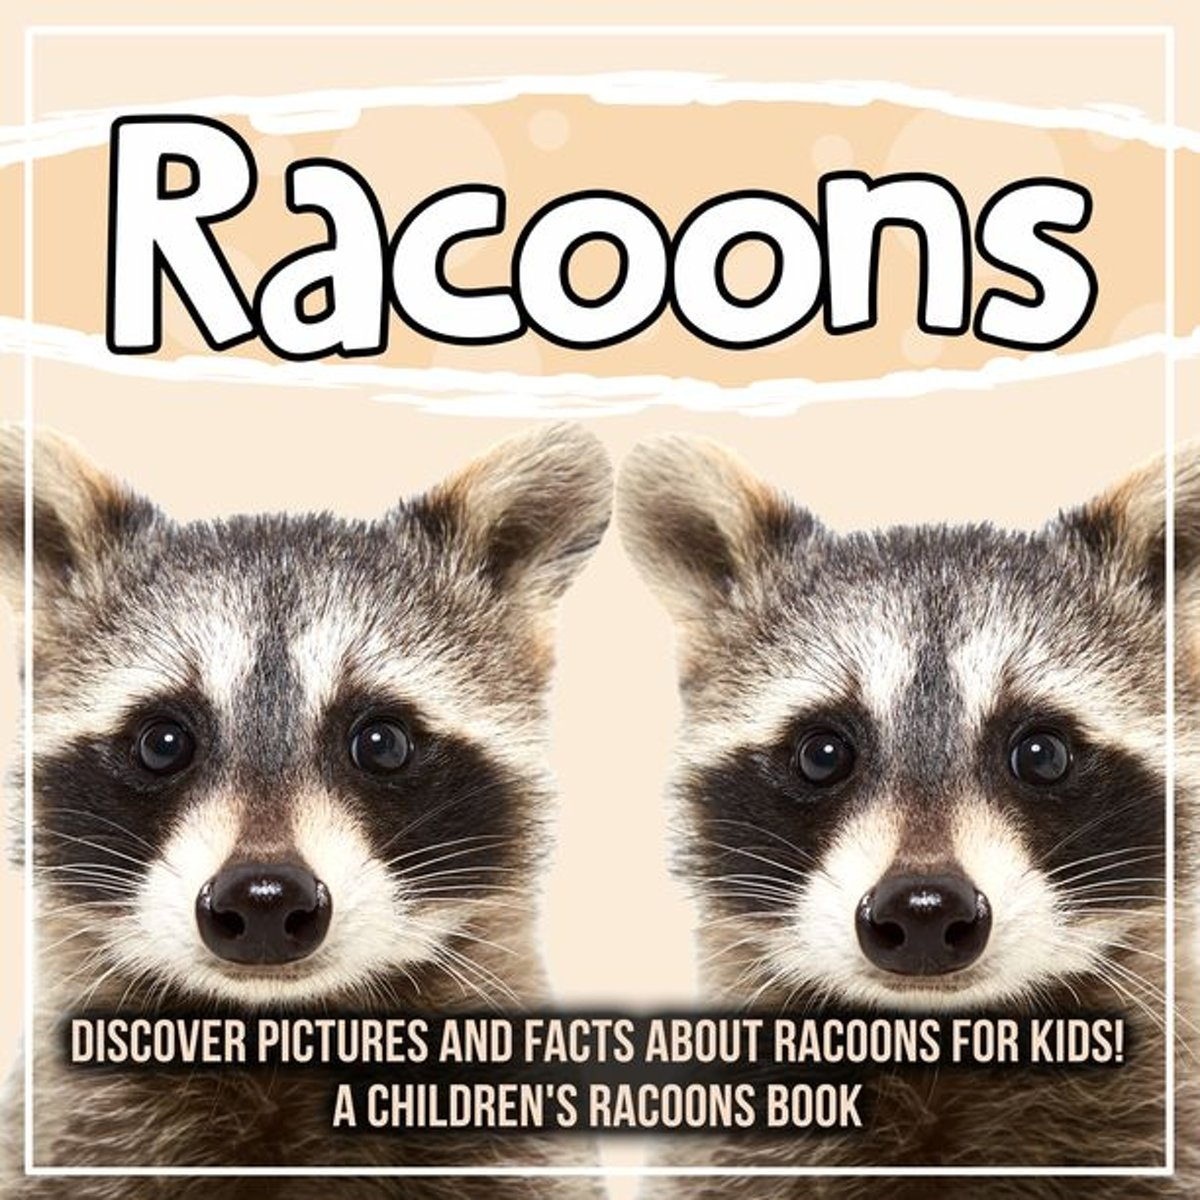 Racoons: Discover Pictures and Facts About Racoons For Kids! A Children's Racoons Book